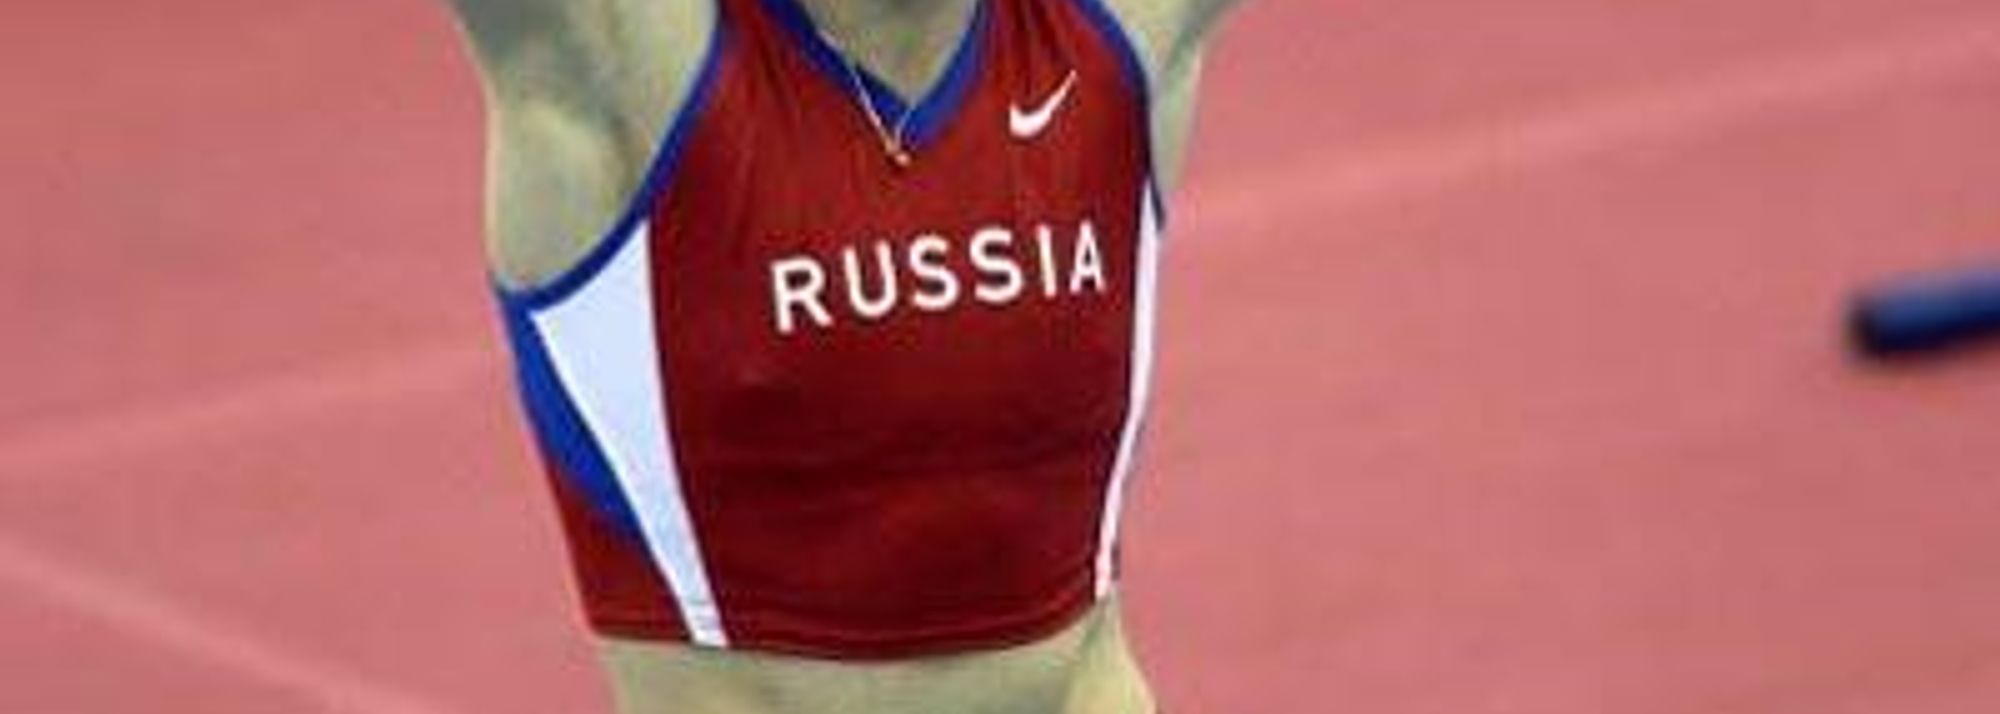 Russia's Svetlana Feofanova won the women's Pole Vault final in the last session of the 9th IAAF World Indoor Championships in Athletics (14-16 March) in the National Indoor Arena, giving the championships the ultimate kudos of a 4.80m World record, the 29th in the history of the World Indoors.